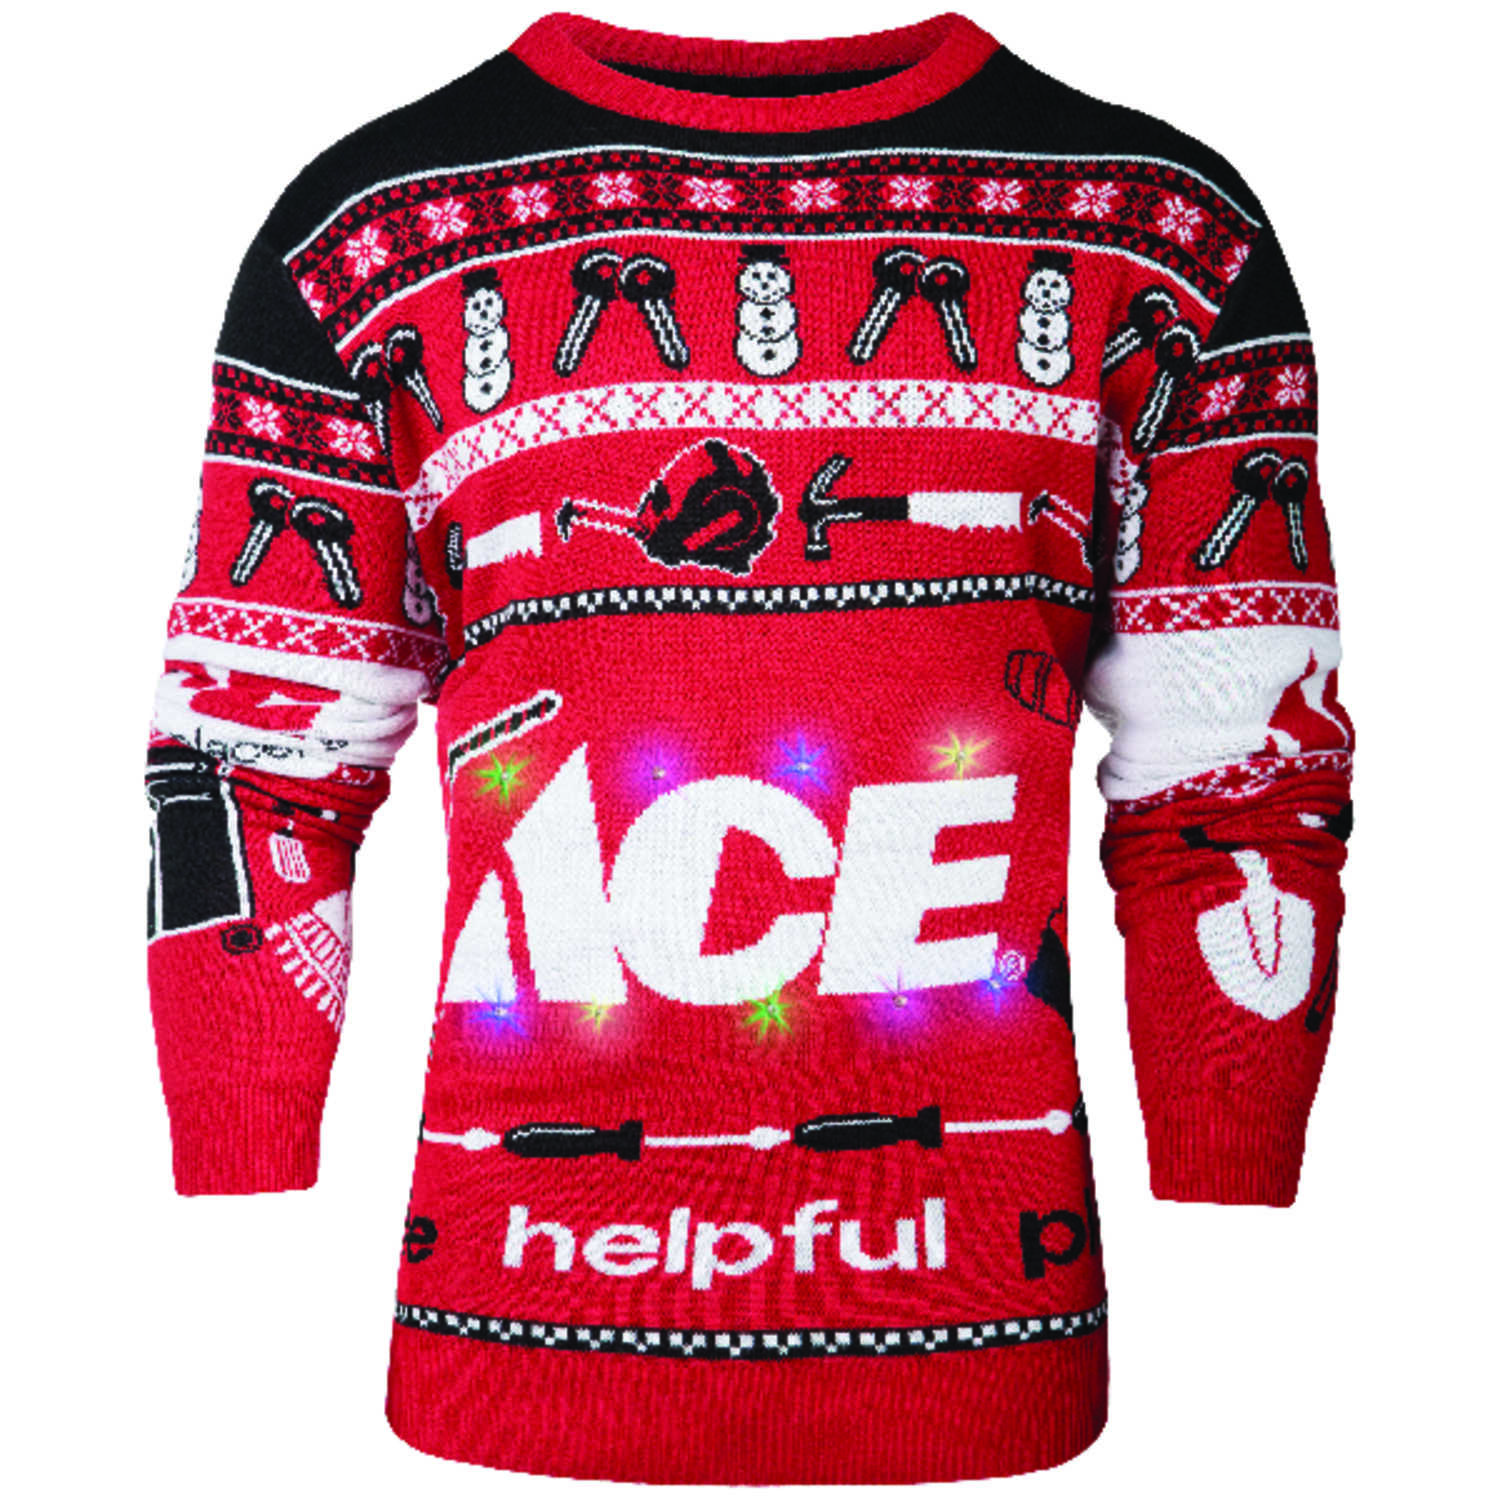 Ace  L  Long Sleeve  Men's  Crew Neck  Red/White/Black  Ace Ugly Sweater